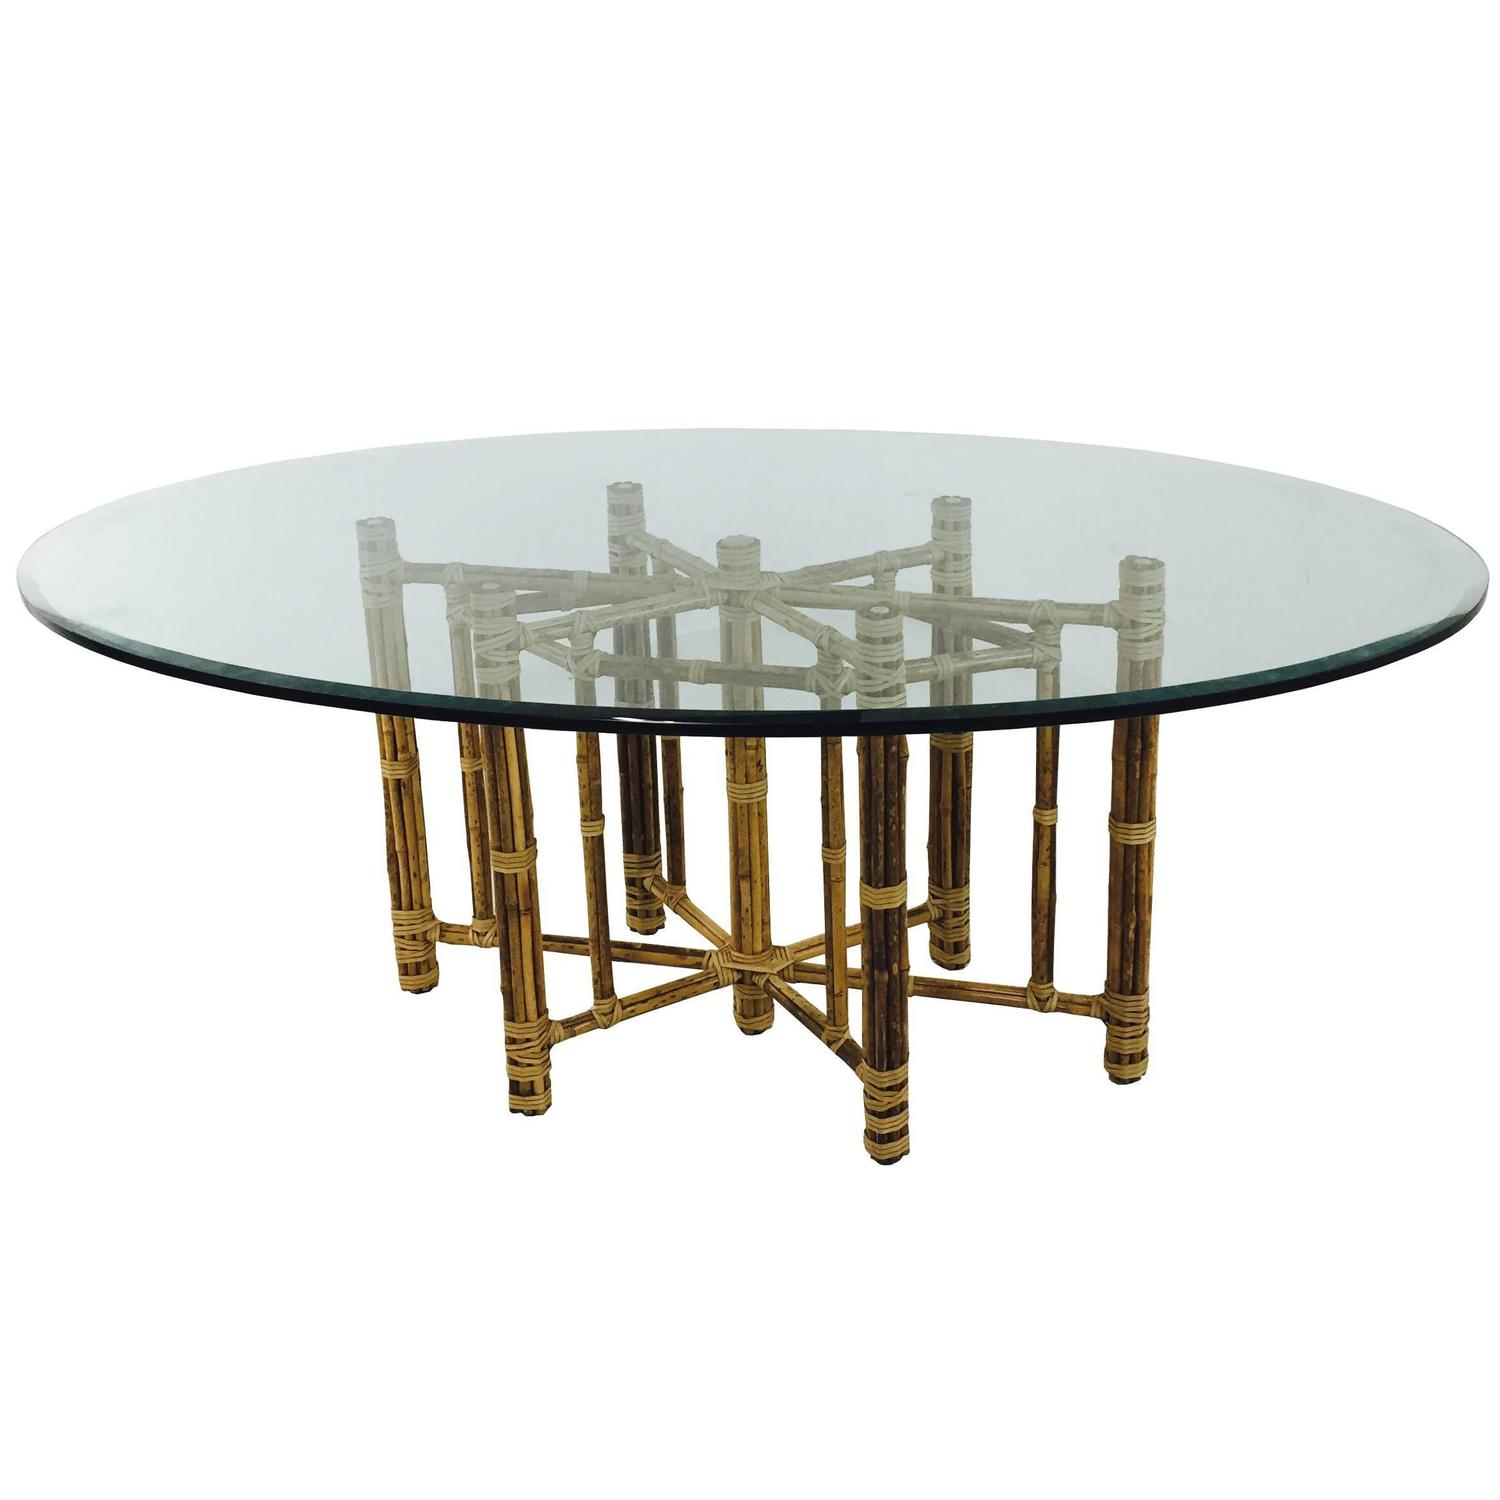 Bamboo Oval Glass Dining Table By McGuire At 1stdibs